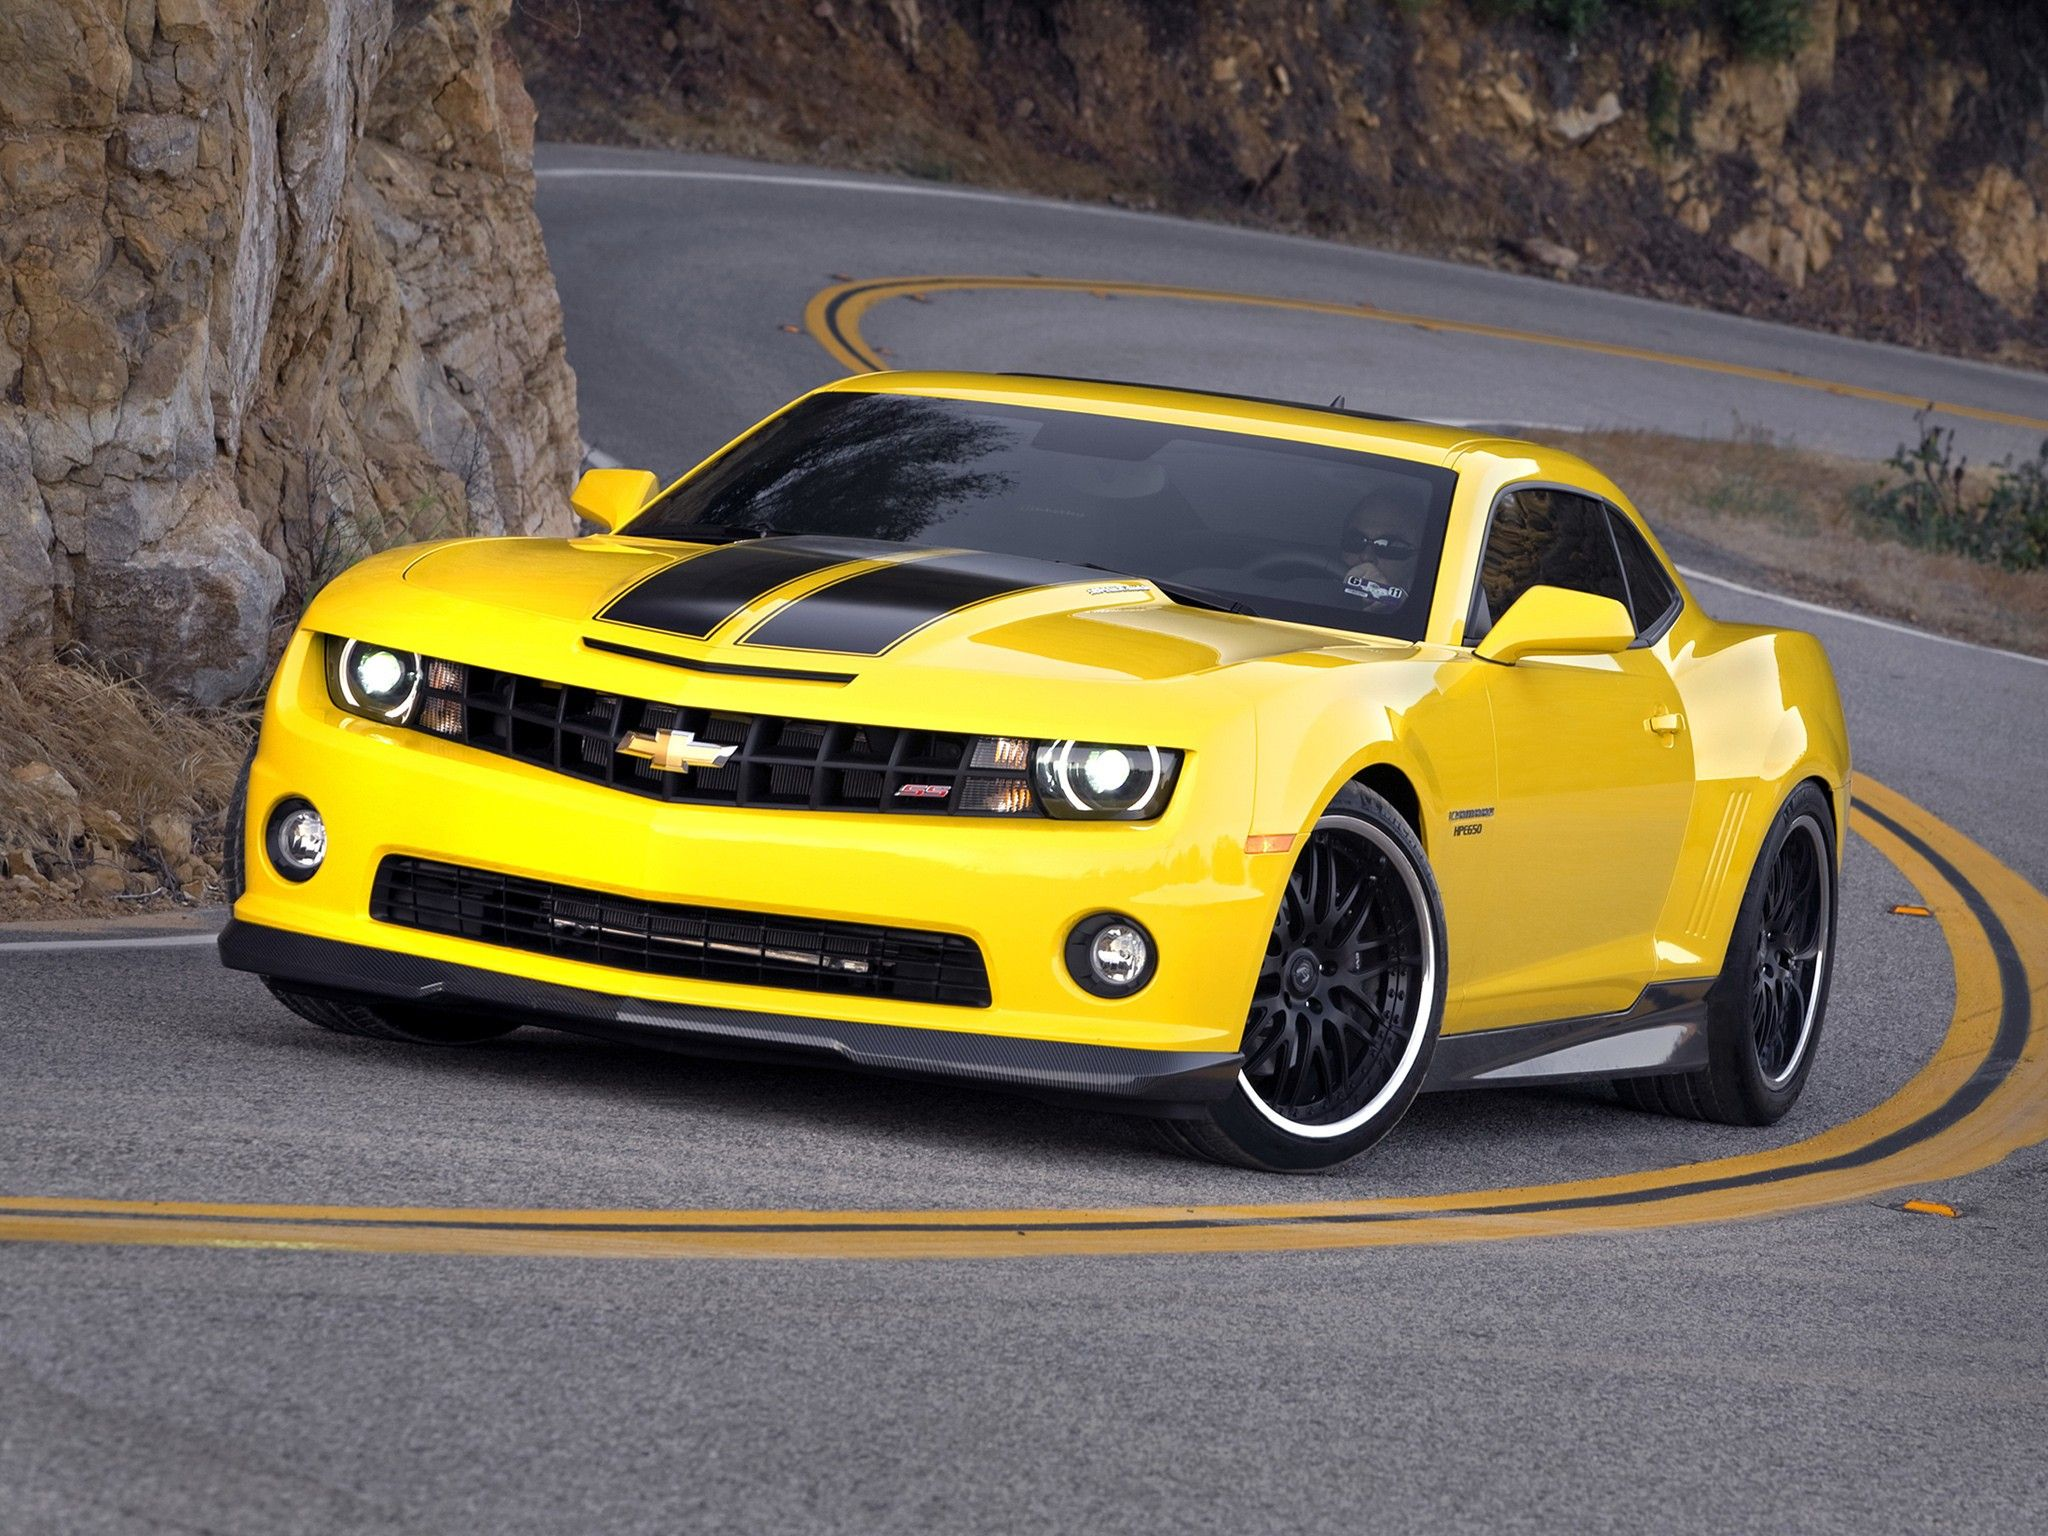 Is It A Camaro Or Is It Bumblebee Chevrolet Camaro Yellow Camaro Transformers Cars